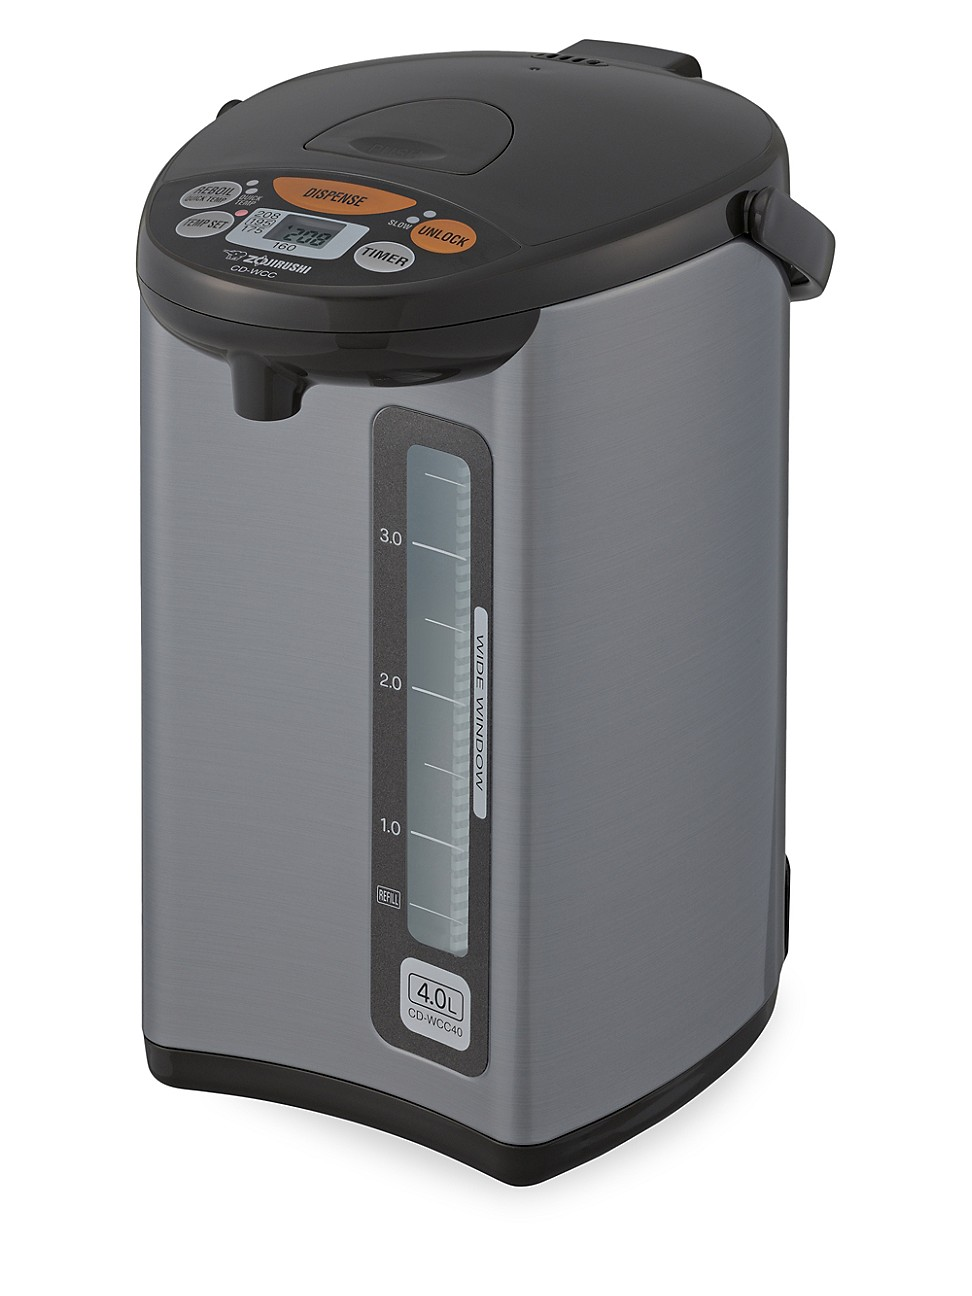 Zojirushi Cd-wcc40ts Micom 4l Water Boiler & Warmer In 4 Liter